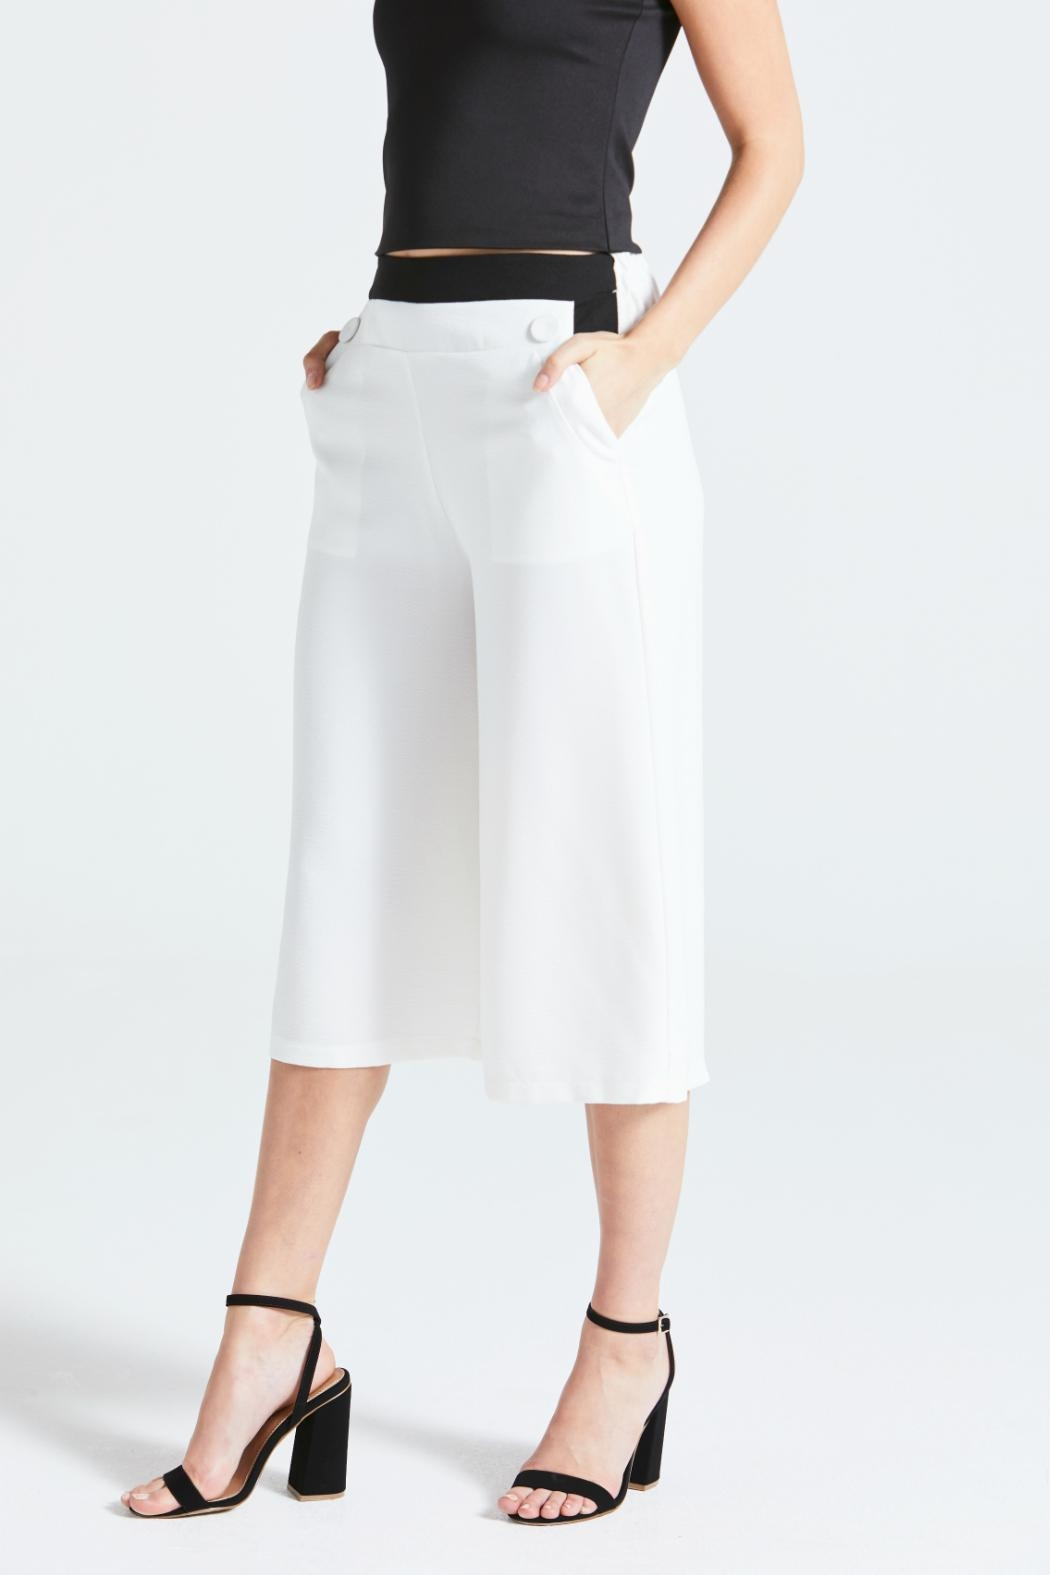 Angeleye London Renis Culottes - Front Cropped Image